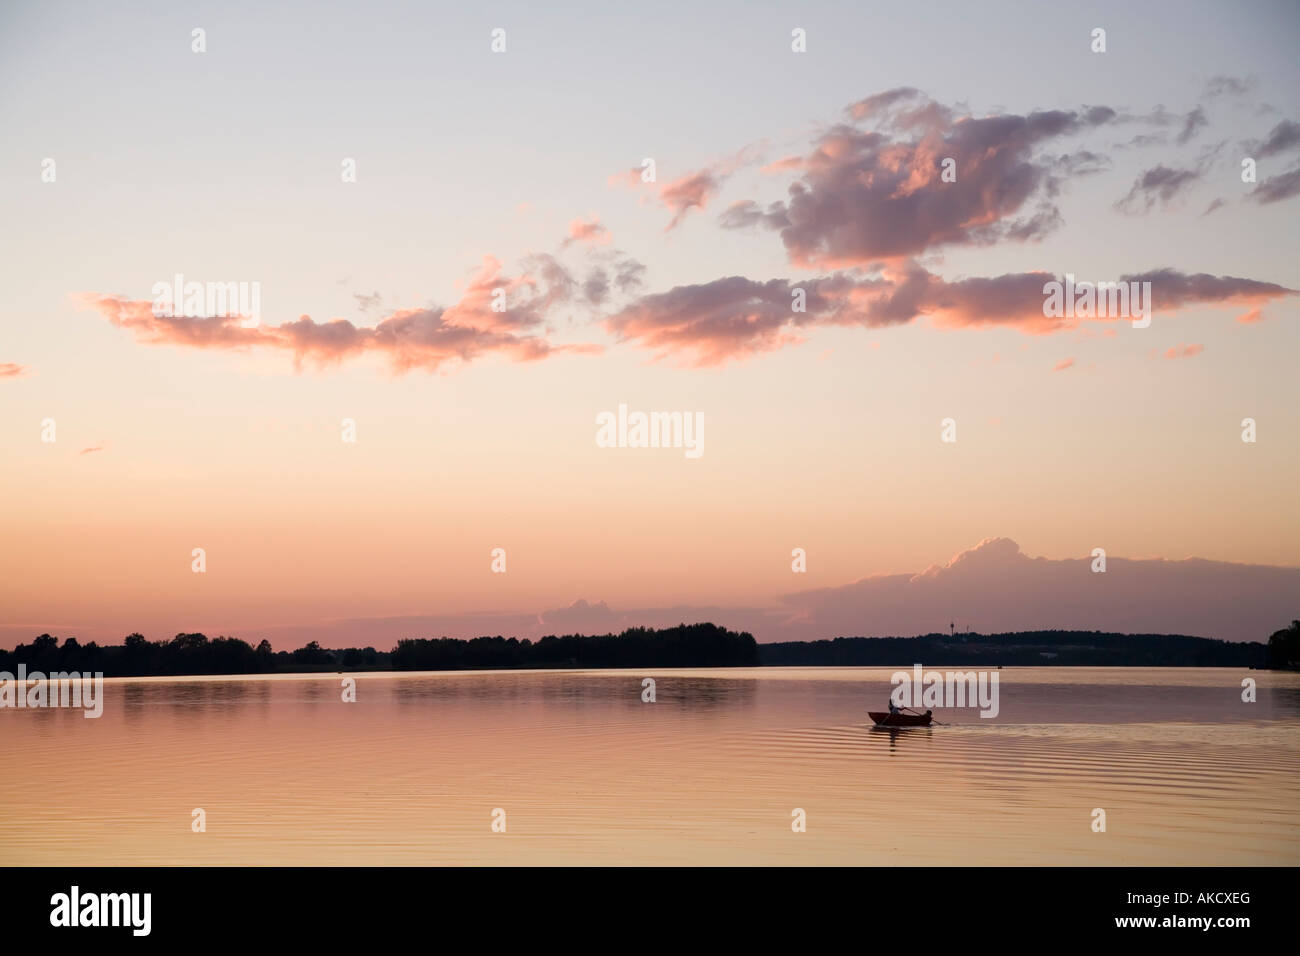 Rowing boat on Municky Rybnik lake at sunset Czech republic - Stock Image